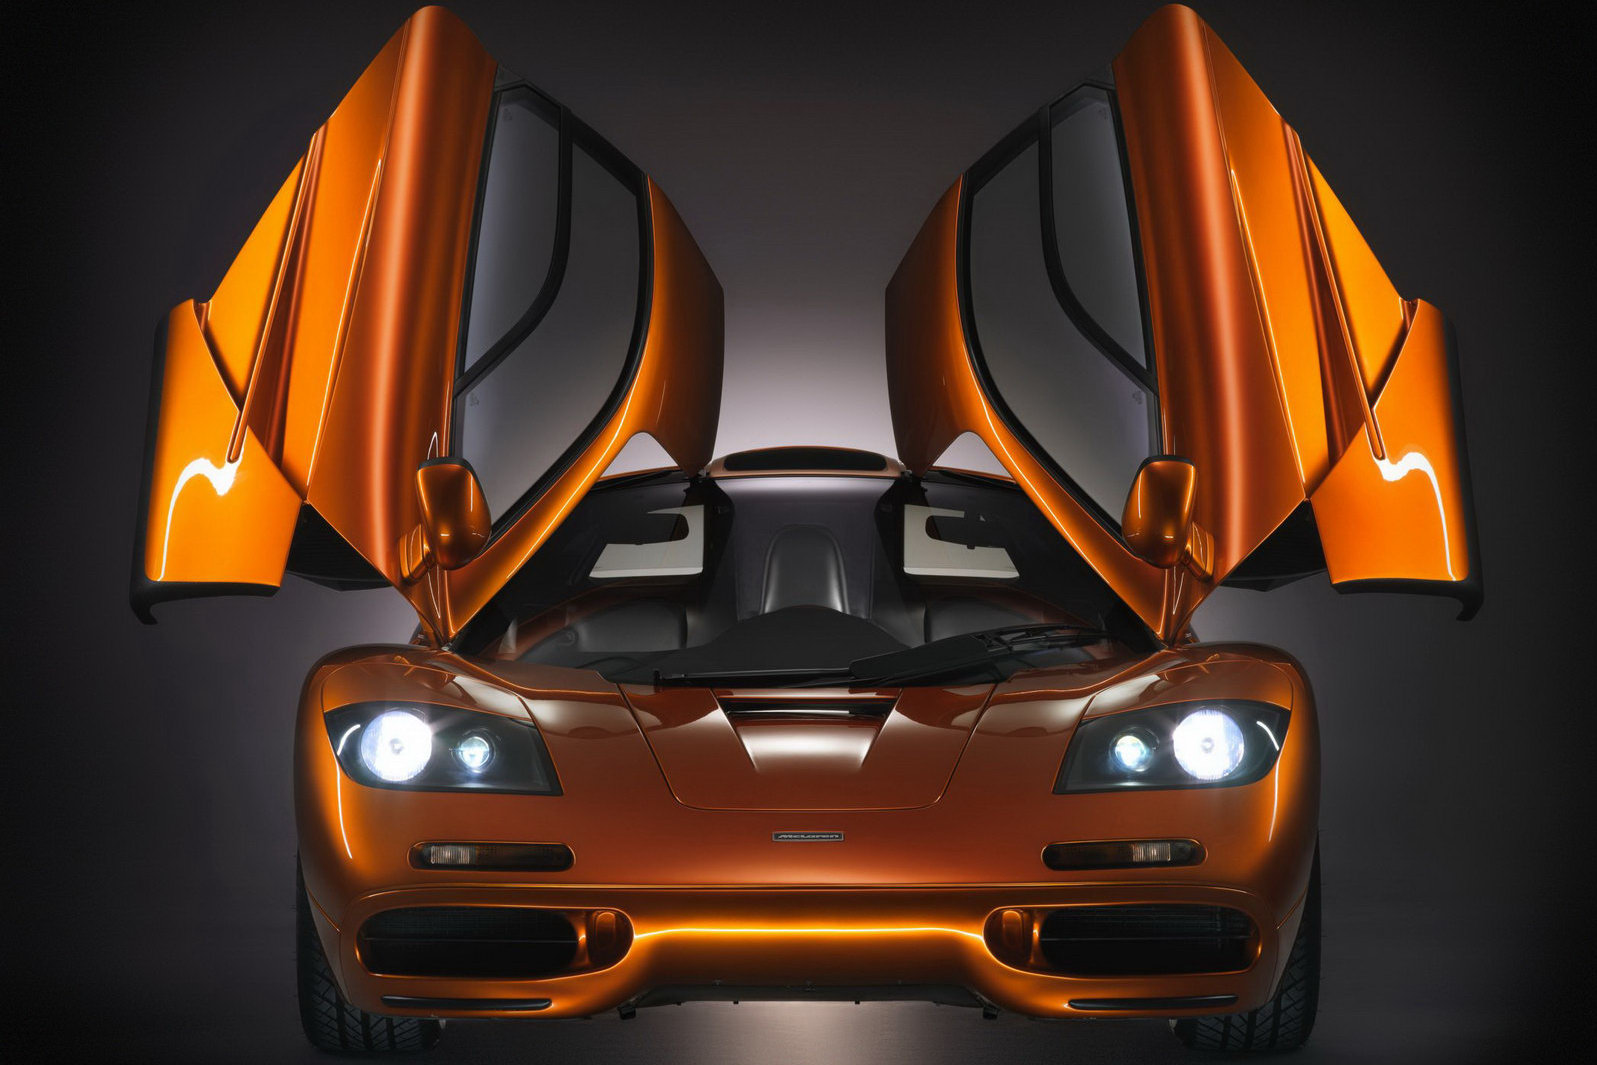 2012 McLaren Iconic F1 Successor 3 The Successor Will Come – 2012 McLaren Iconic F1 Successor!